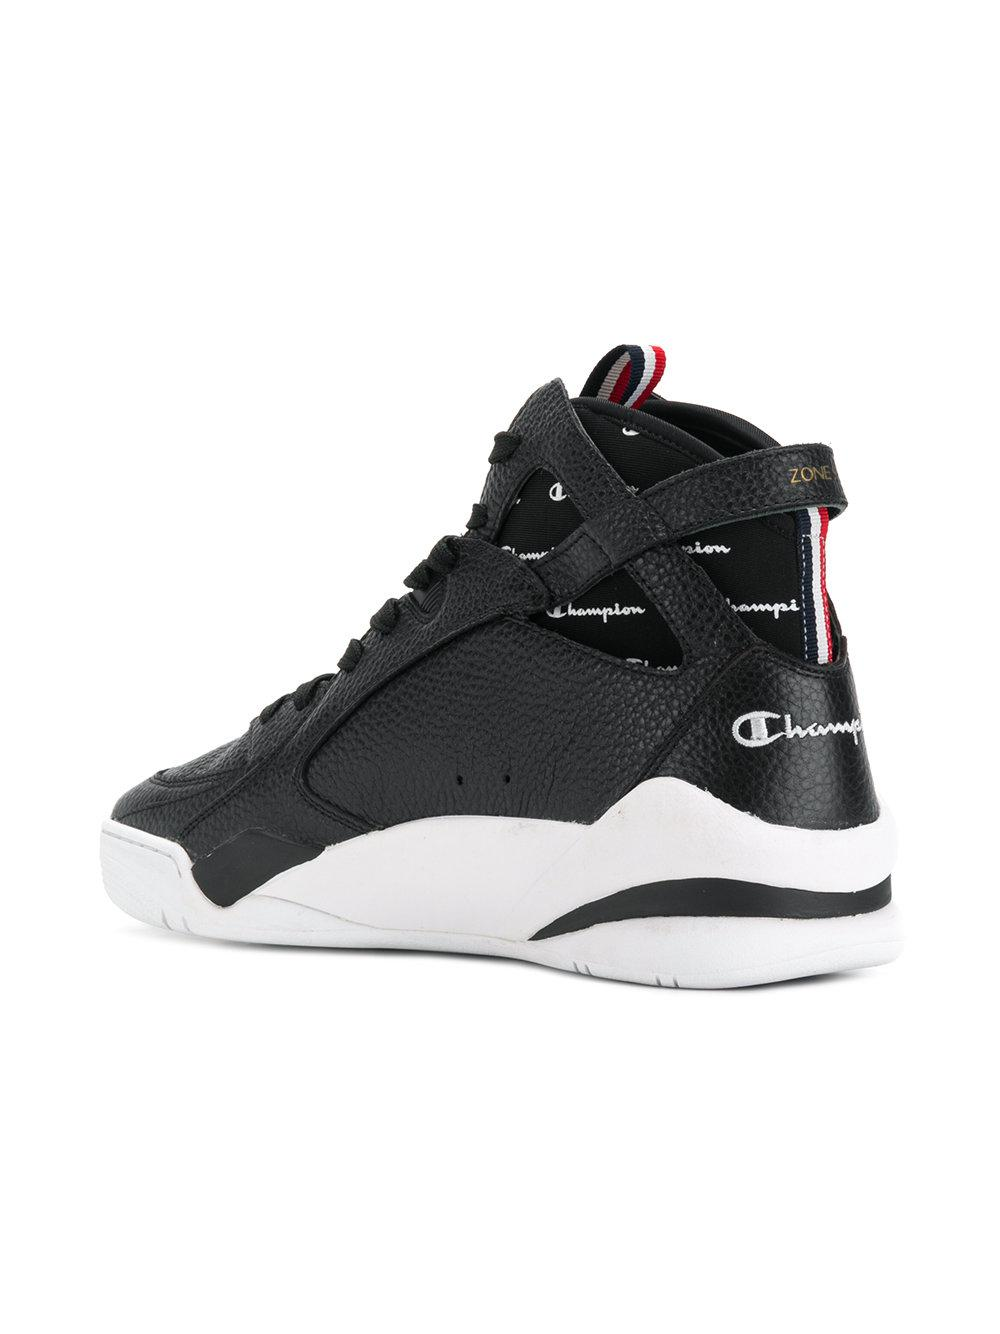 Champion Zone 93 Hi Top Sneakers In Black For Men Lyst